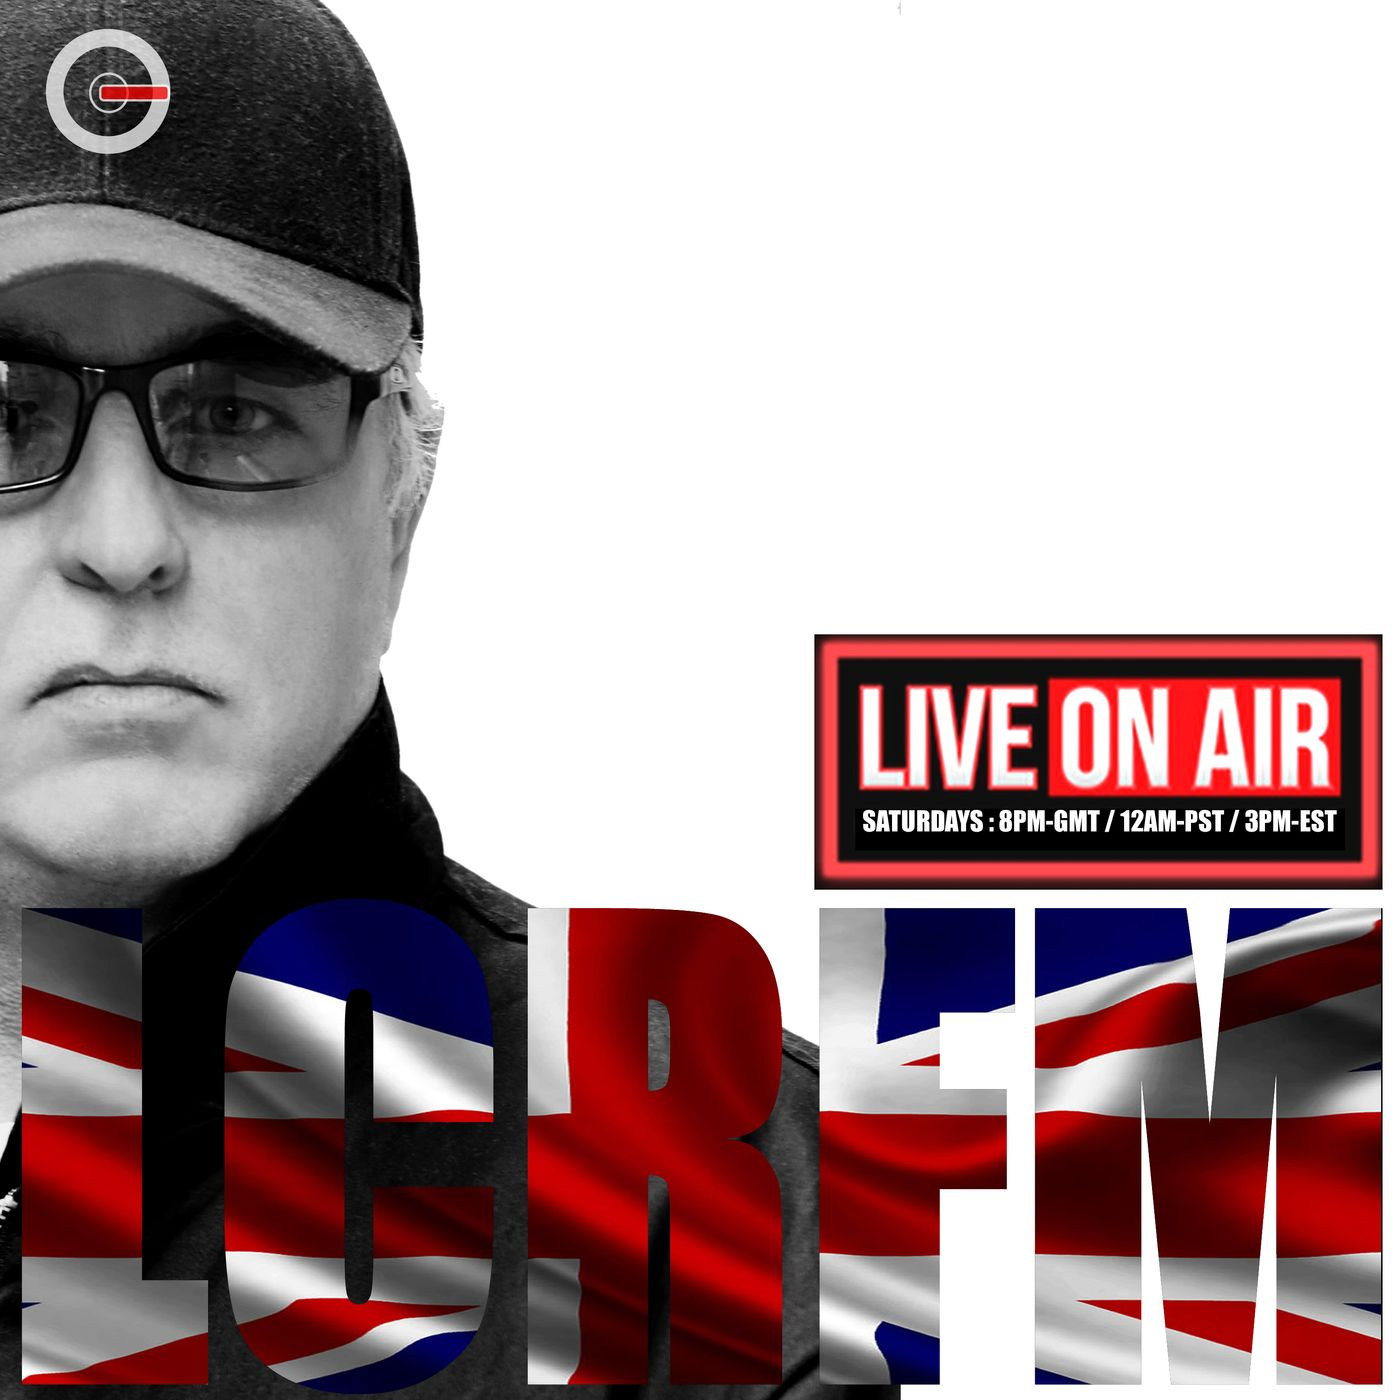 YOU GOT THE RIGHT TO PARTY... Live from London ... LCRFM.NET